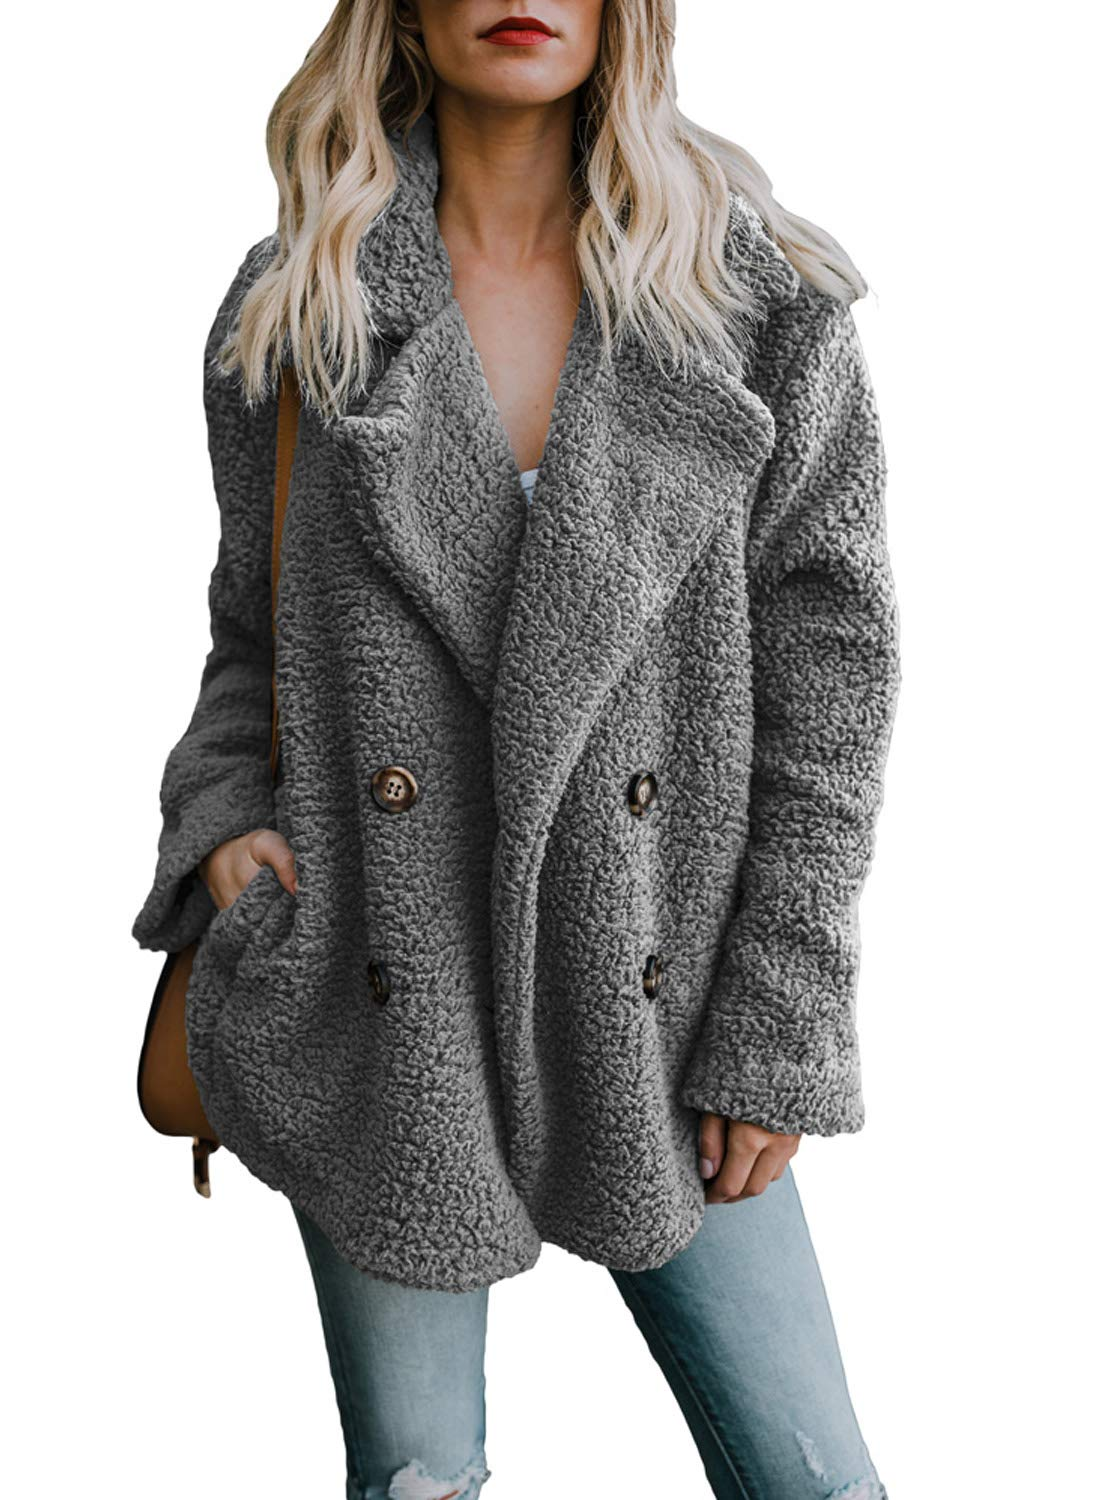 HOTAPEI Womens Jackets Cozy Warm Casual Oversized Long Sleeve Open Front Fuzzy Coat with Pockets Fluffy Cardigan Sweater Jacket Coat Outwear Grey Large